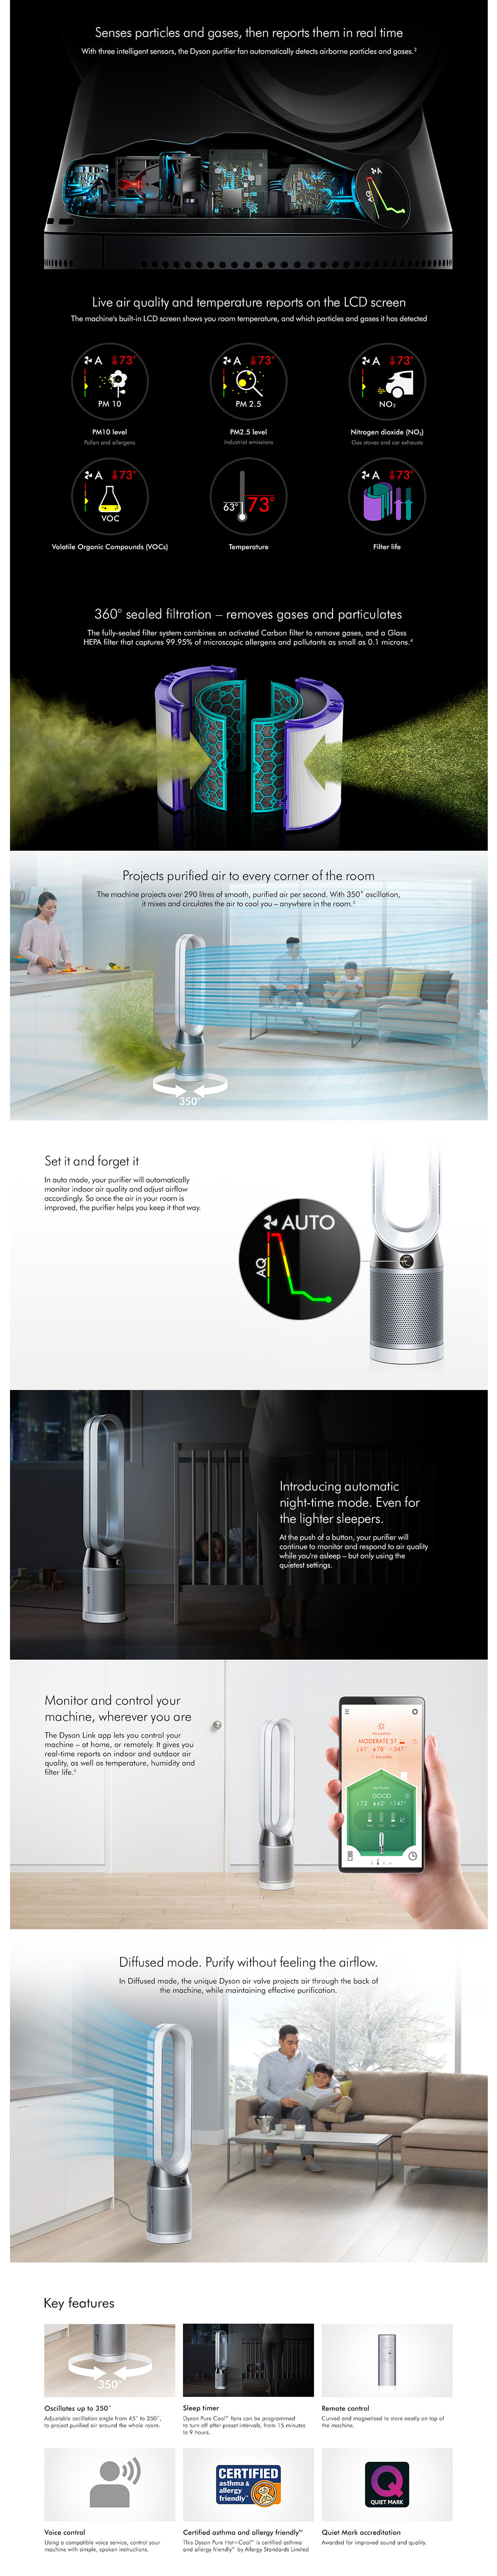 Dyson TP04 Pure Cool Tower Purifier